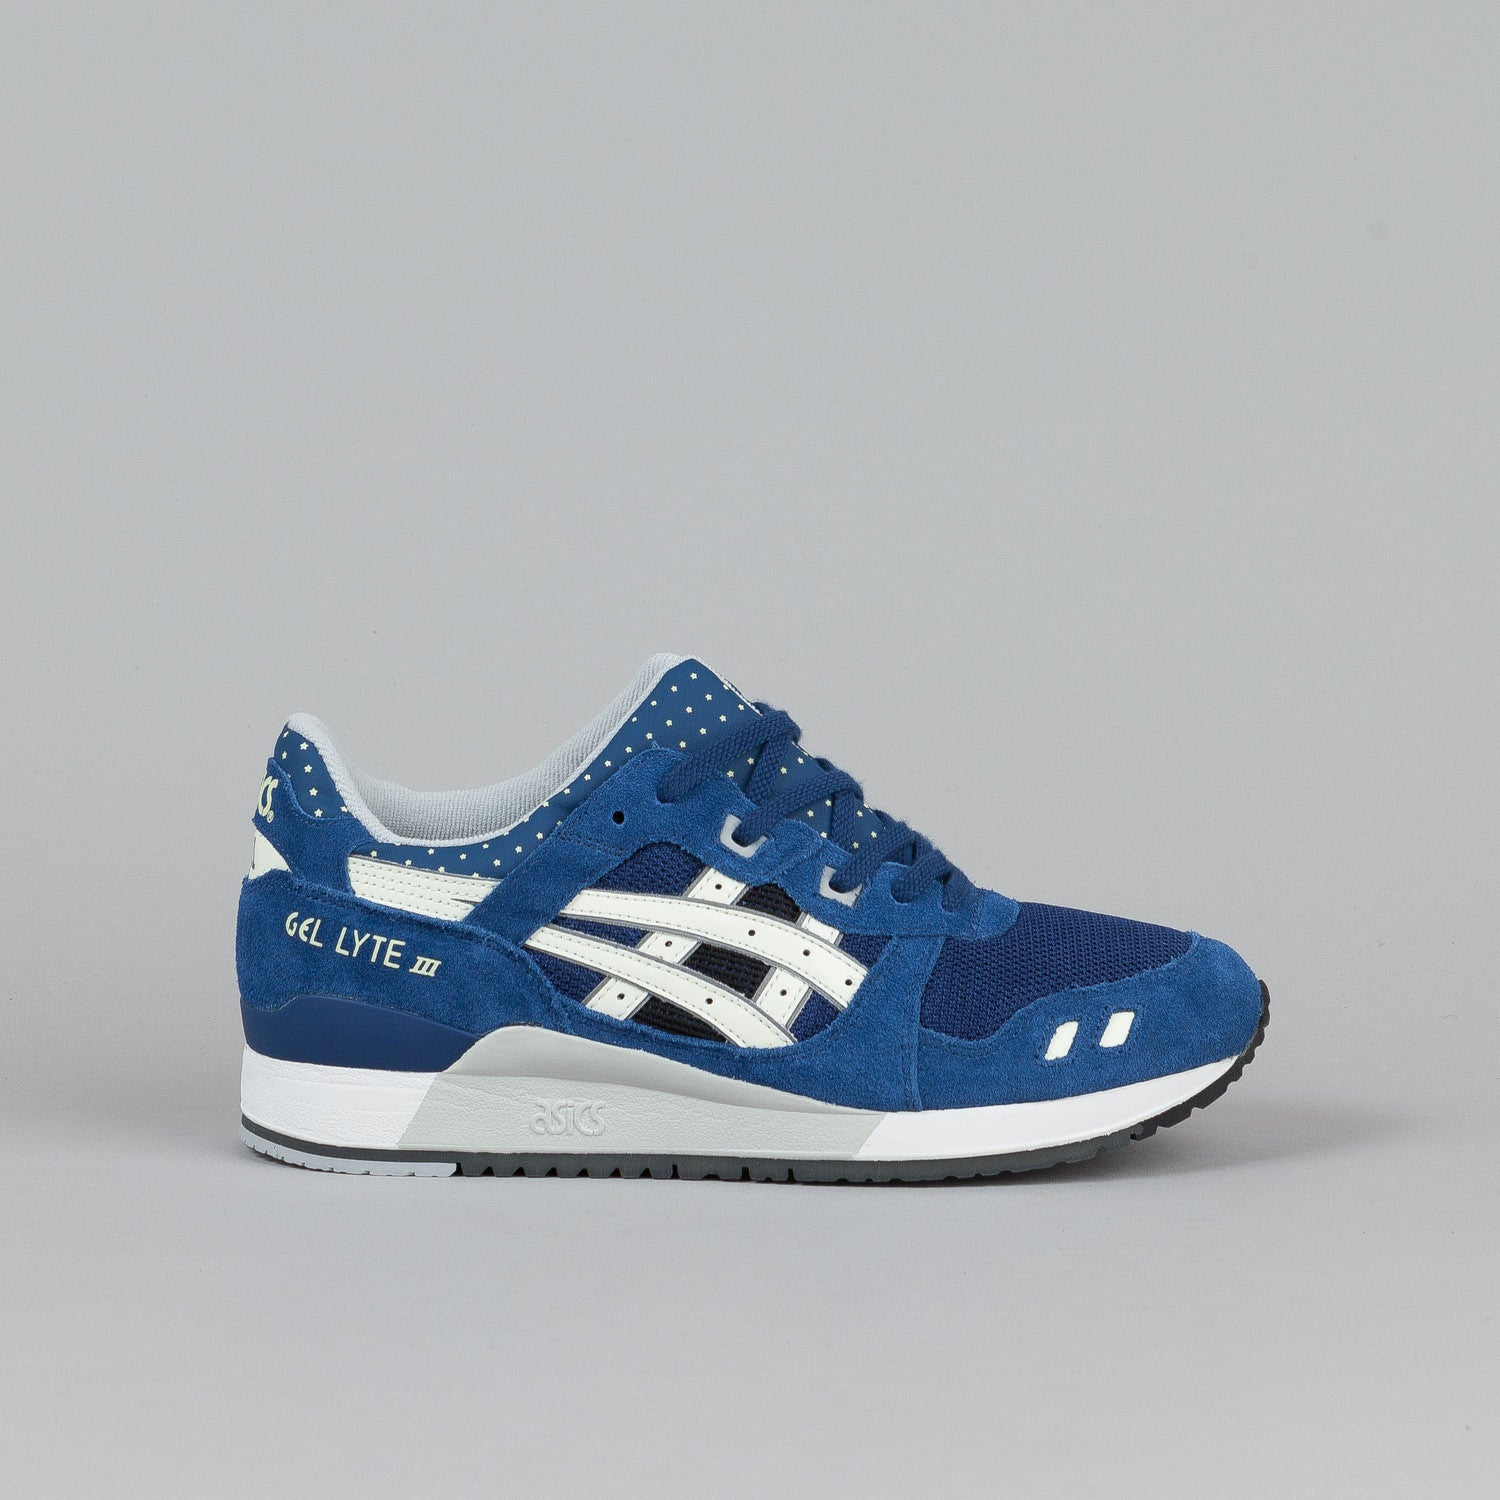 Asics Gel Lyte III Estate Blue / Glow in the Dark